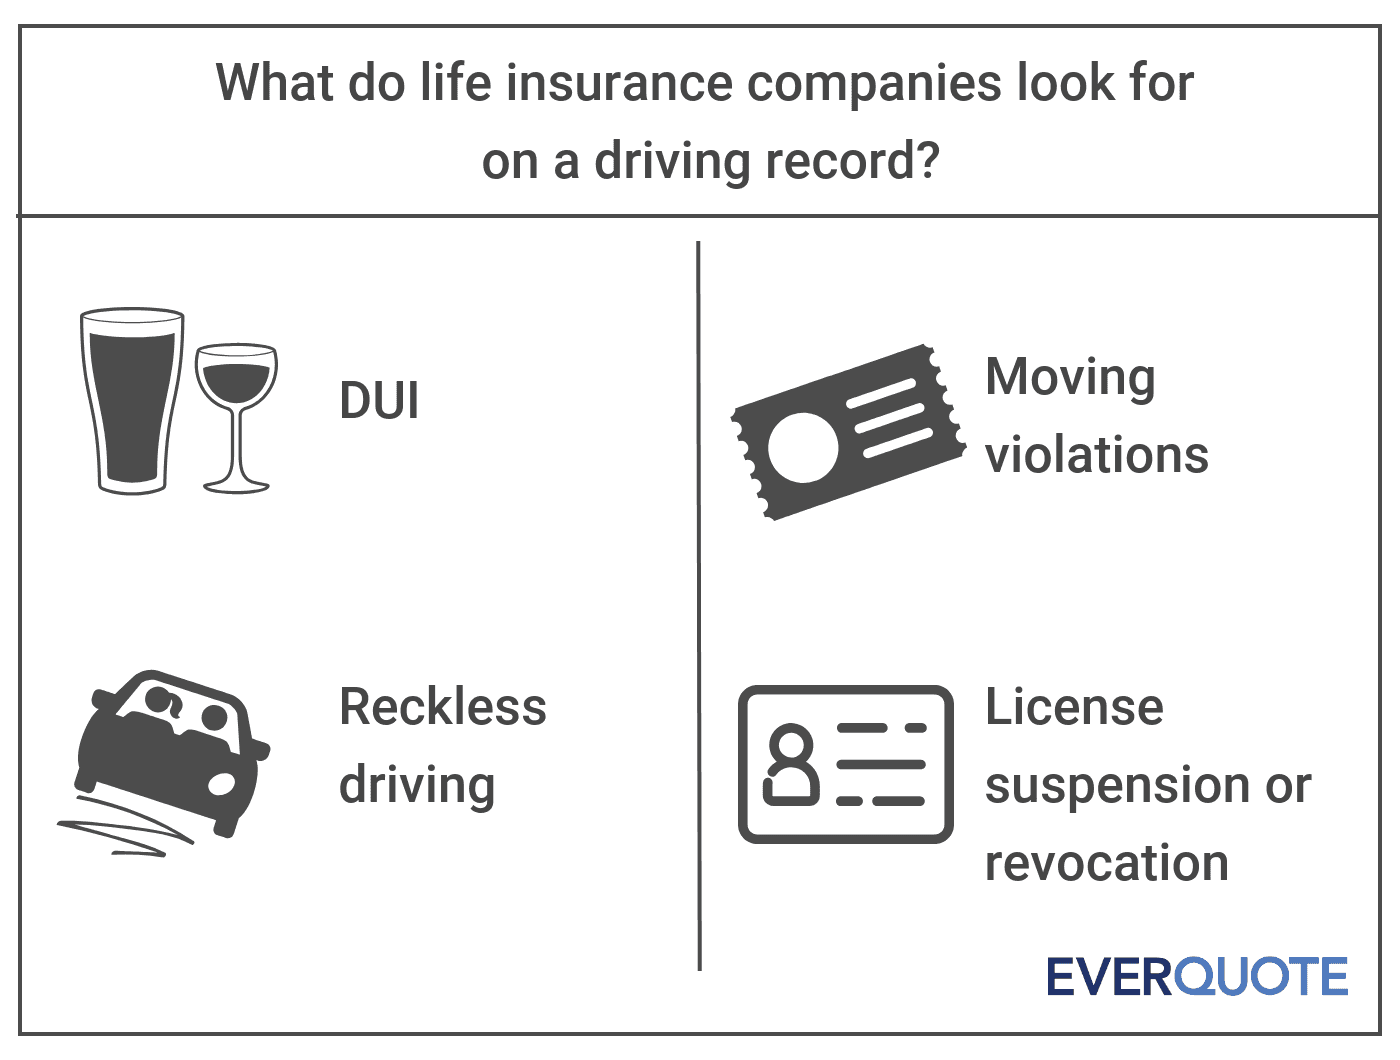 What do life insurance companies look for on a driving record?